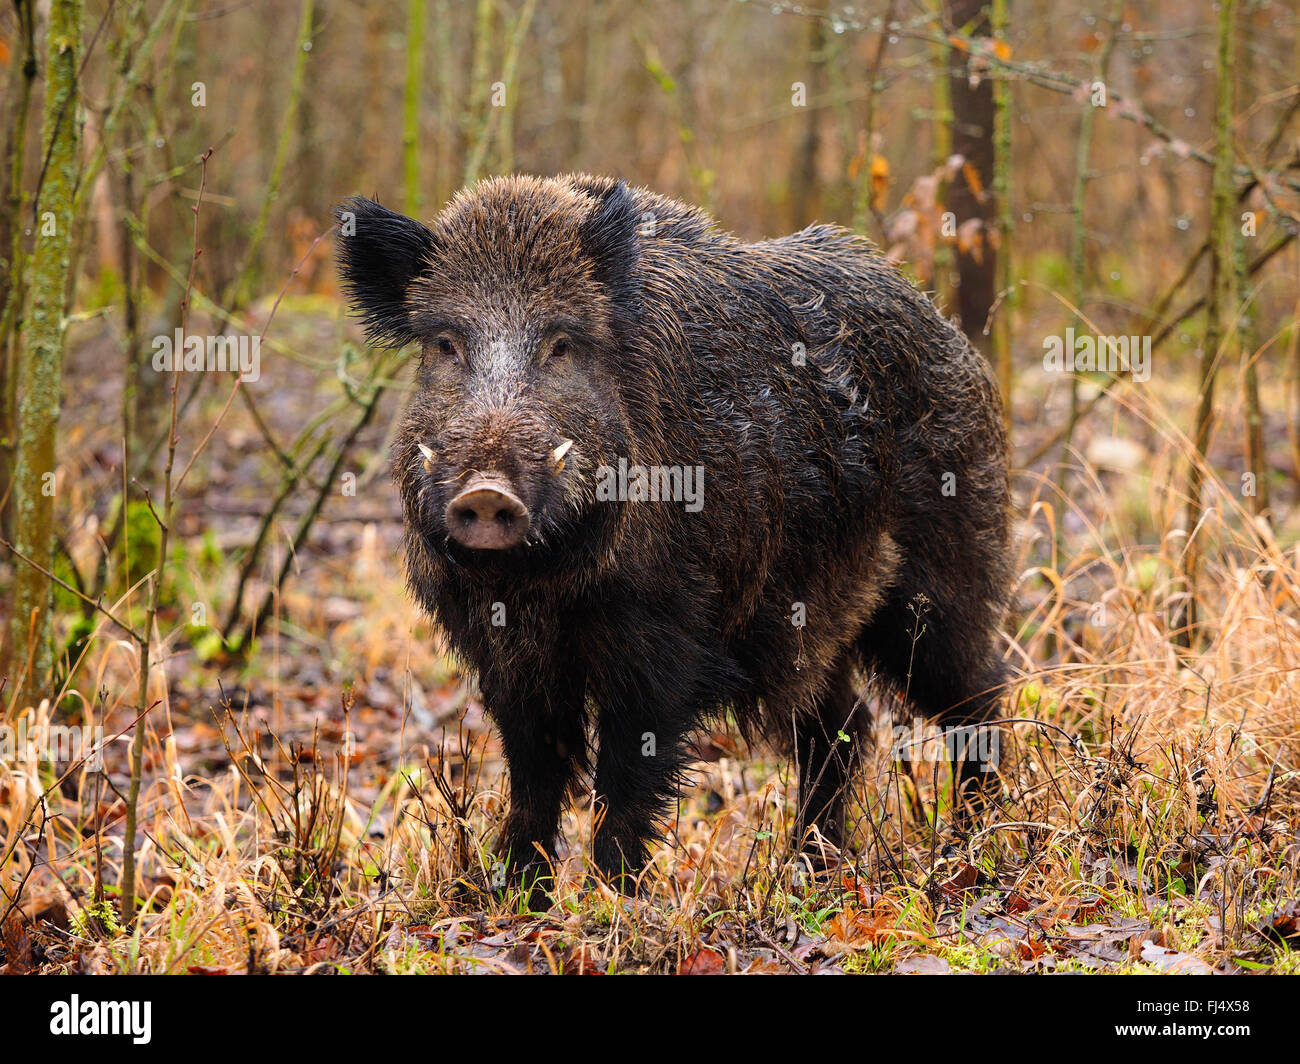 wild boar, pig, wild boar (Sus scrofa), young tusker in snowless winterforest, Germany, Baden-Wuerttemberg Stock Photo